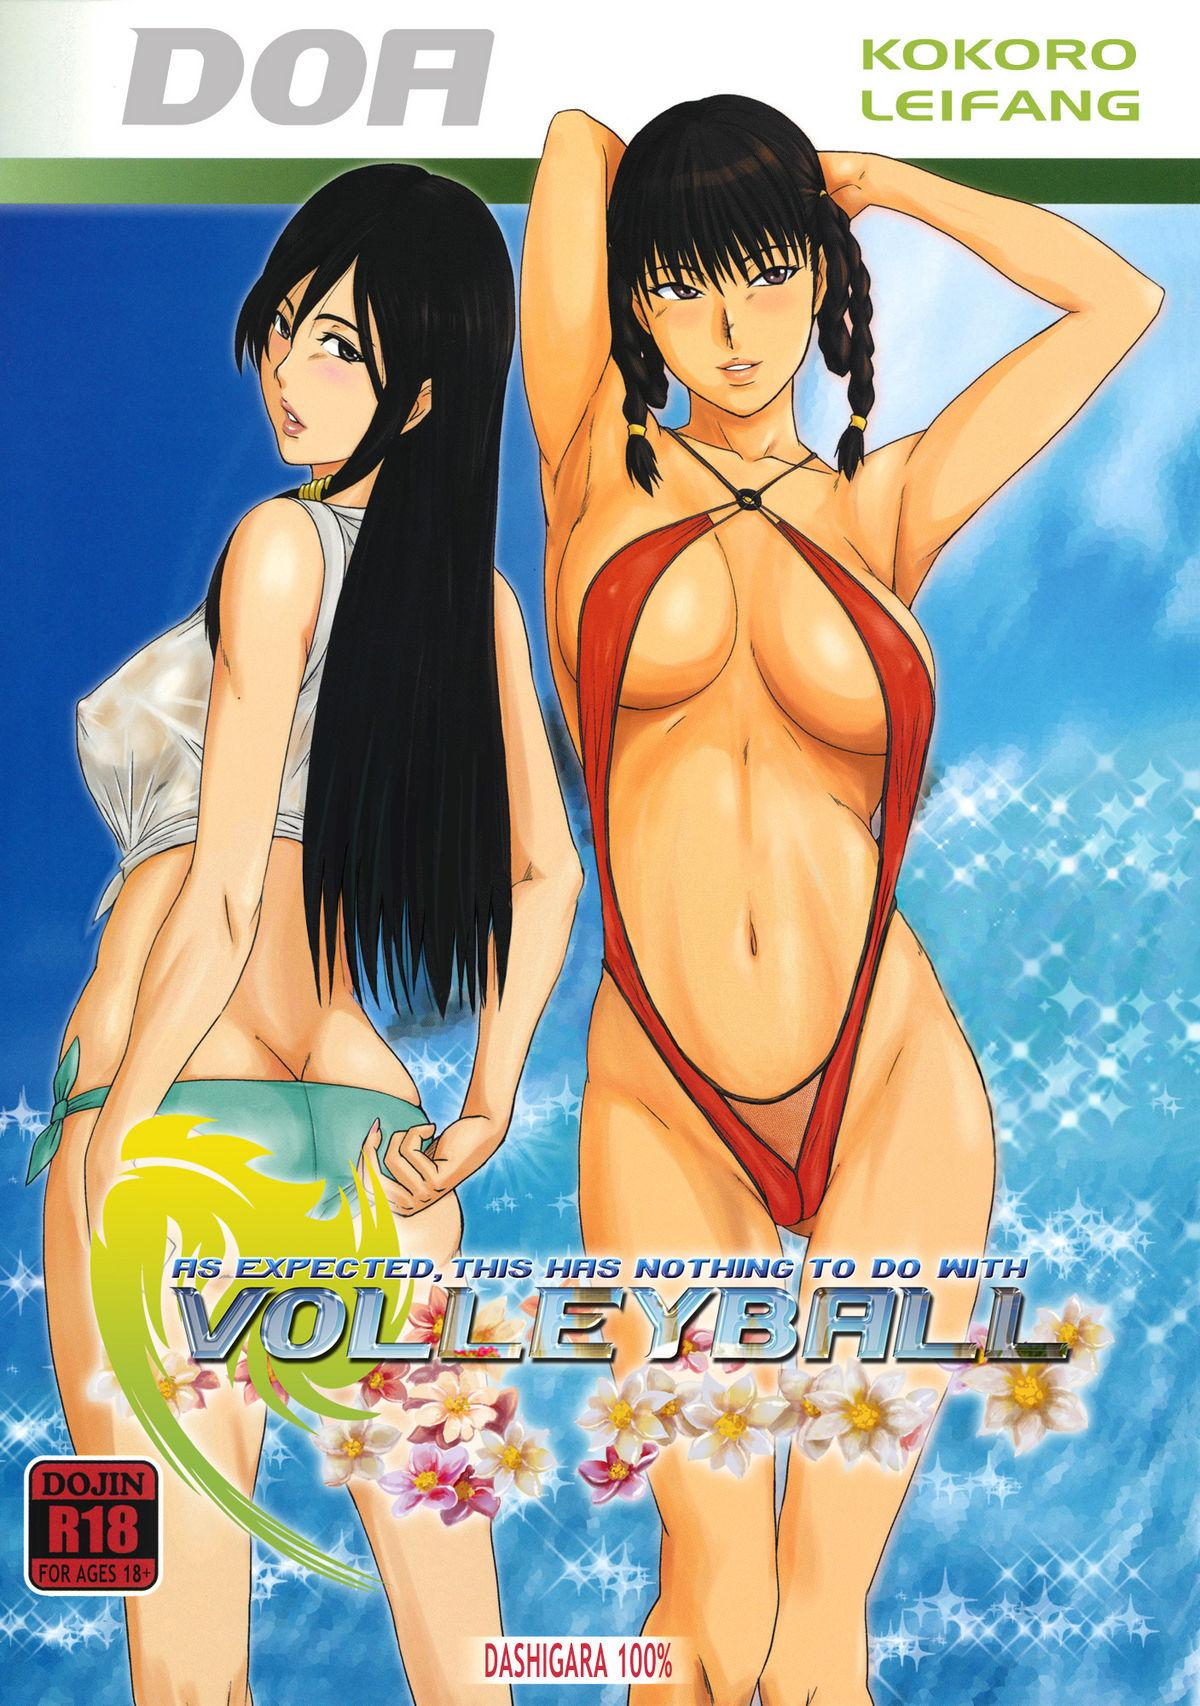 Yappari Volley Nanka Nakatta   As Expected, This Has Nothing to do with Volleyball 0